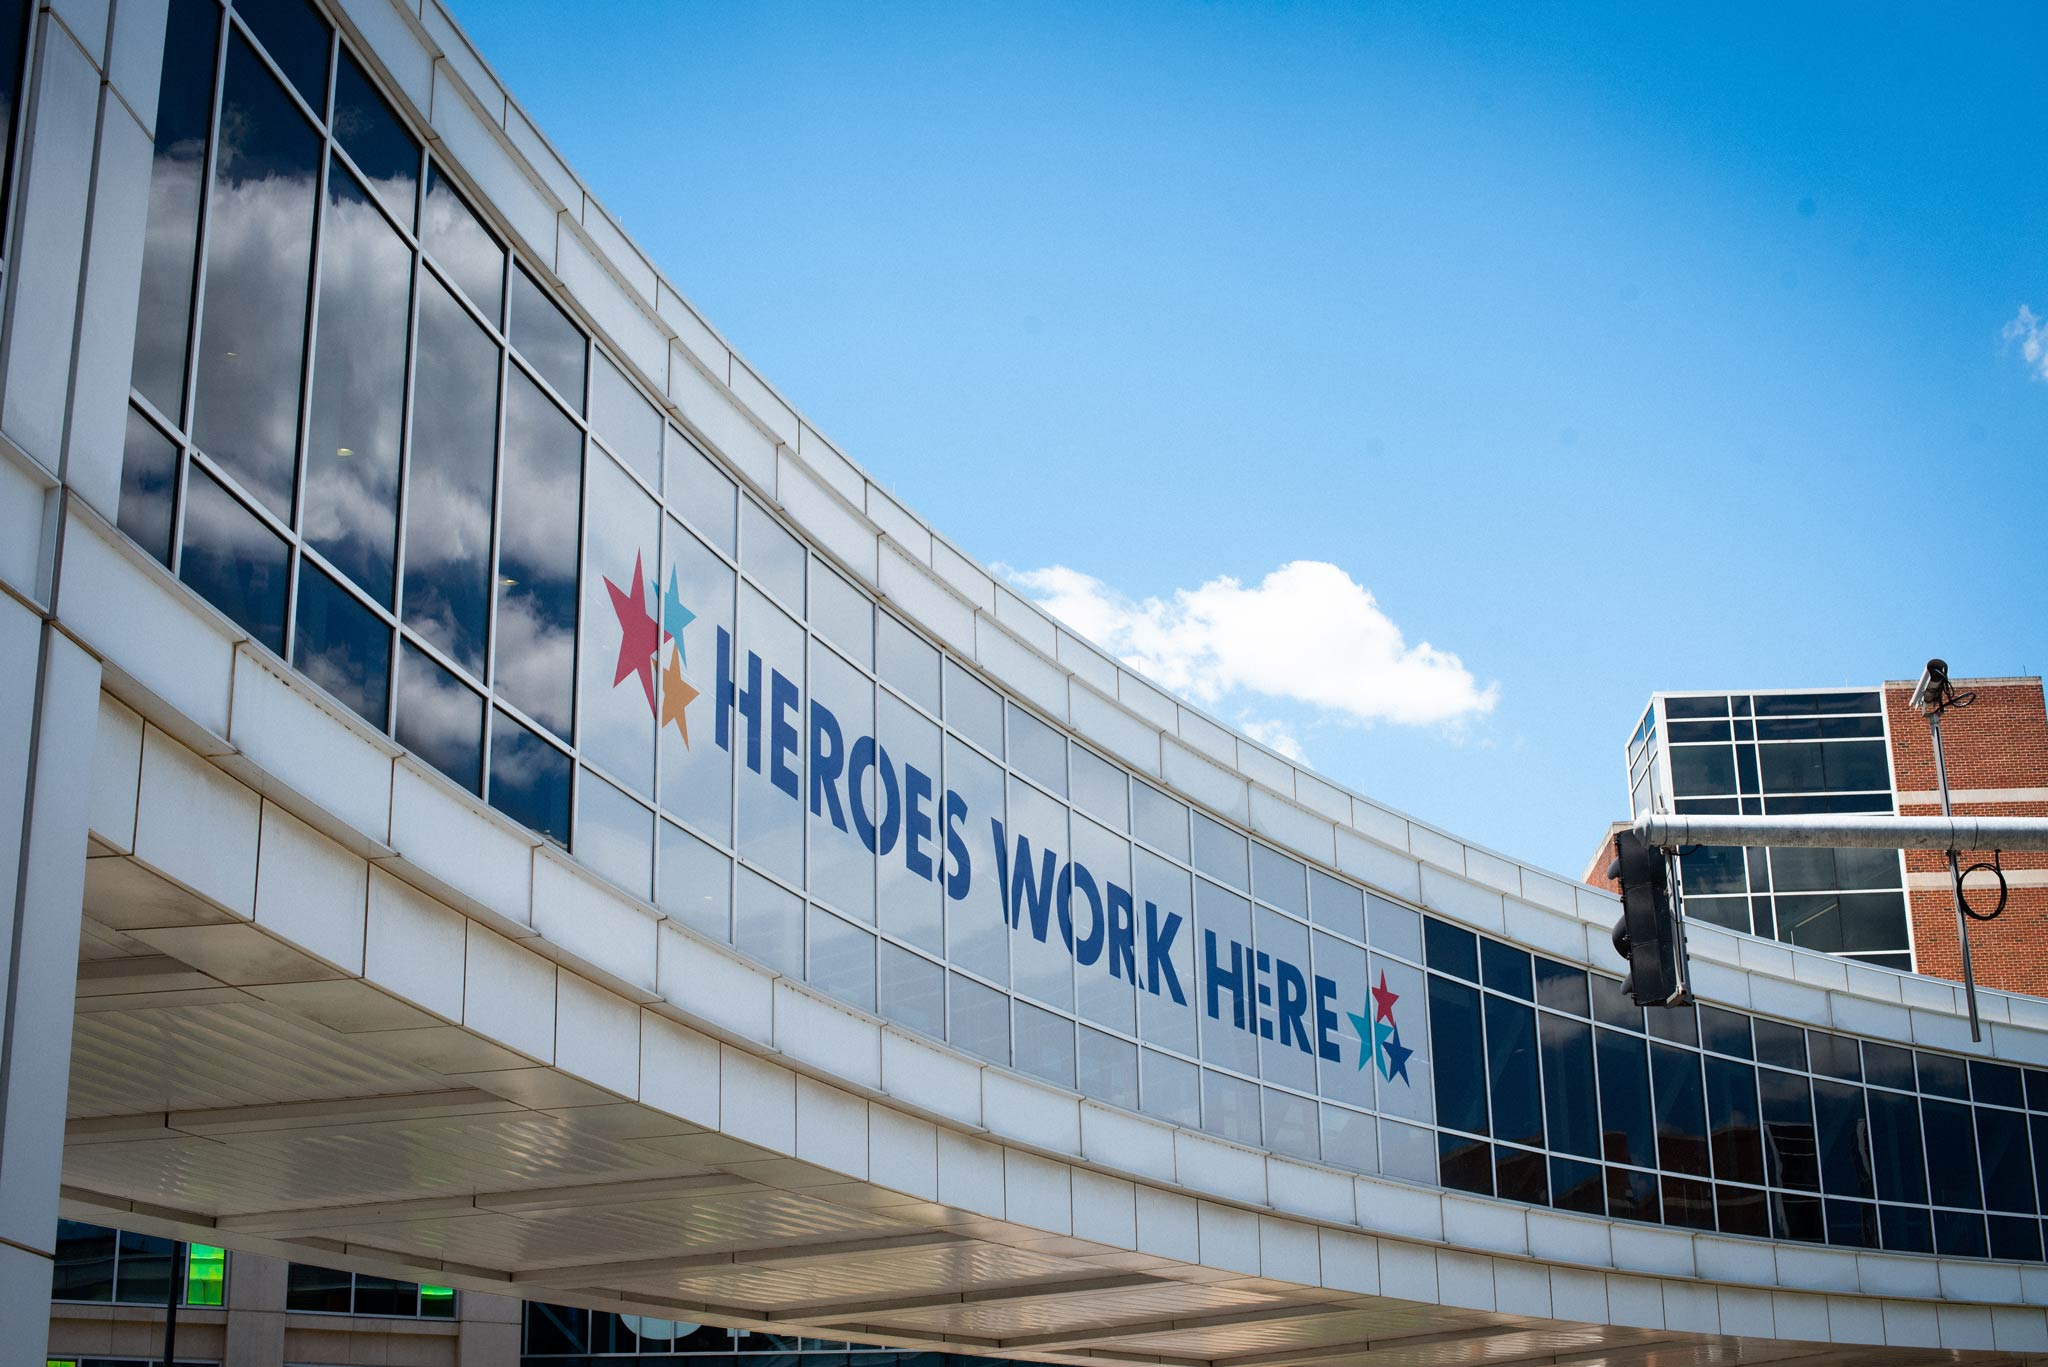 An oblique view of the UK HealthCare pedway across Limestone Street, which features a large sign that says HEROES WORK HERE.